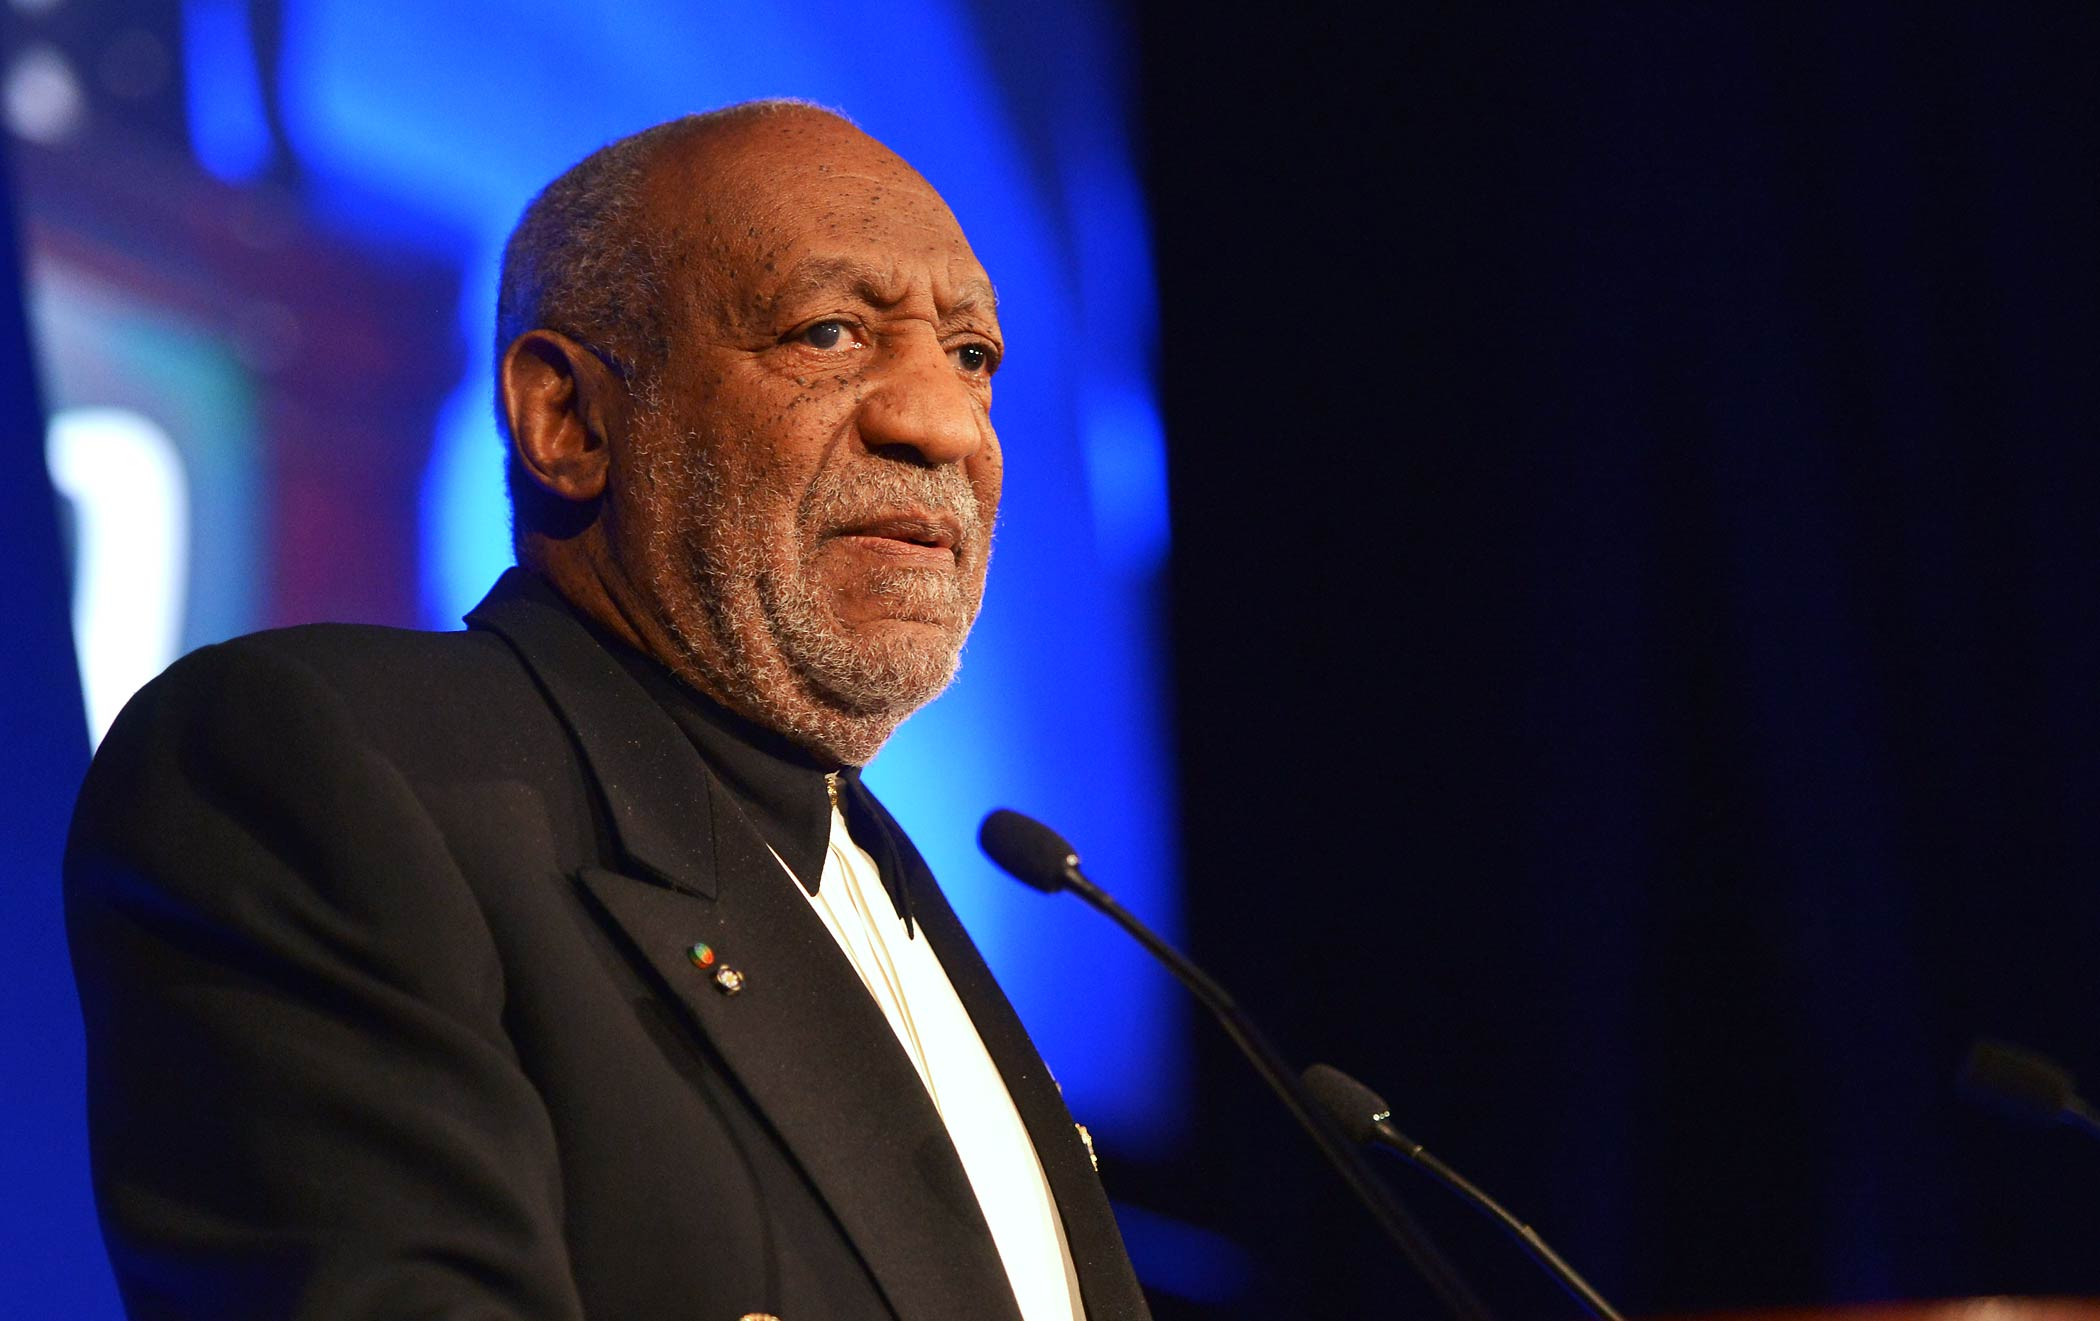 Bill Cosby speaks at the Jackie Robinson Foundation 2014 Awards Dinner at Waldorf Astoria Hotel on March 3, 2014 in New York City.